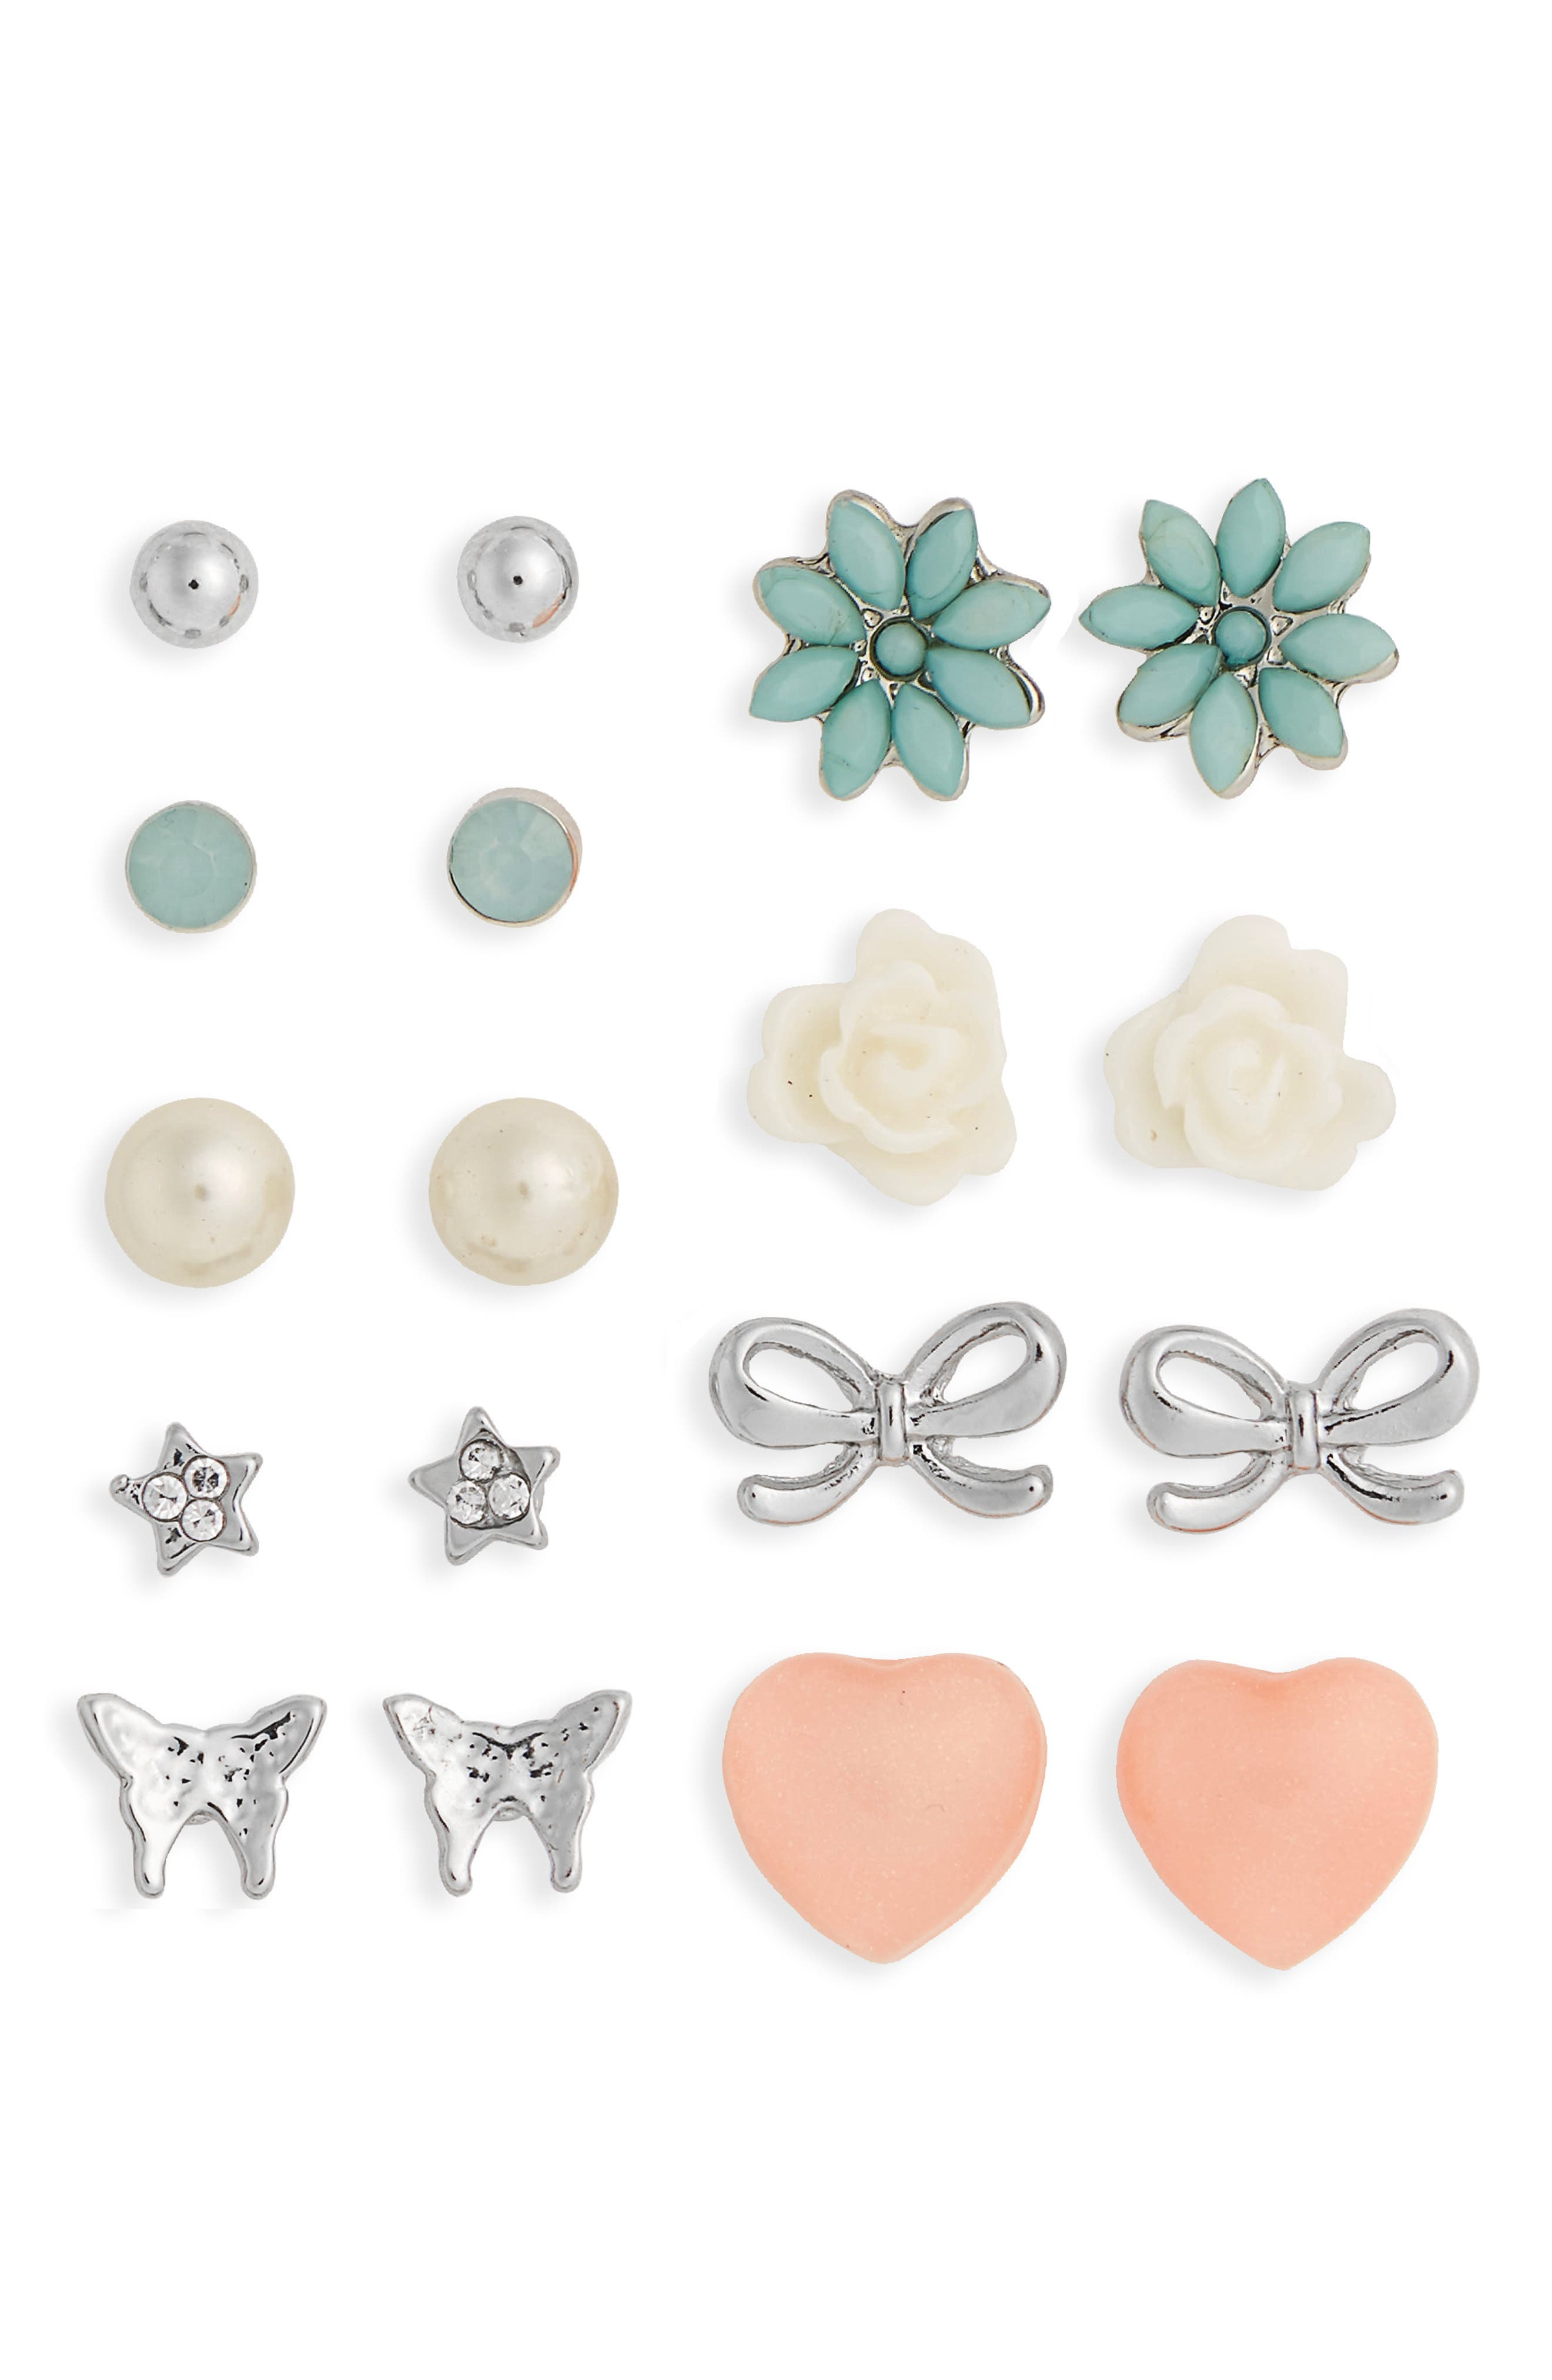 Main Image - Capelli New York Set of 9 Butterfly Earrings (Girls)